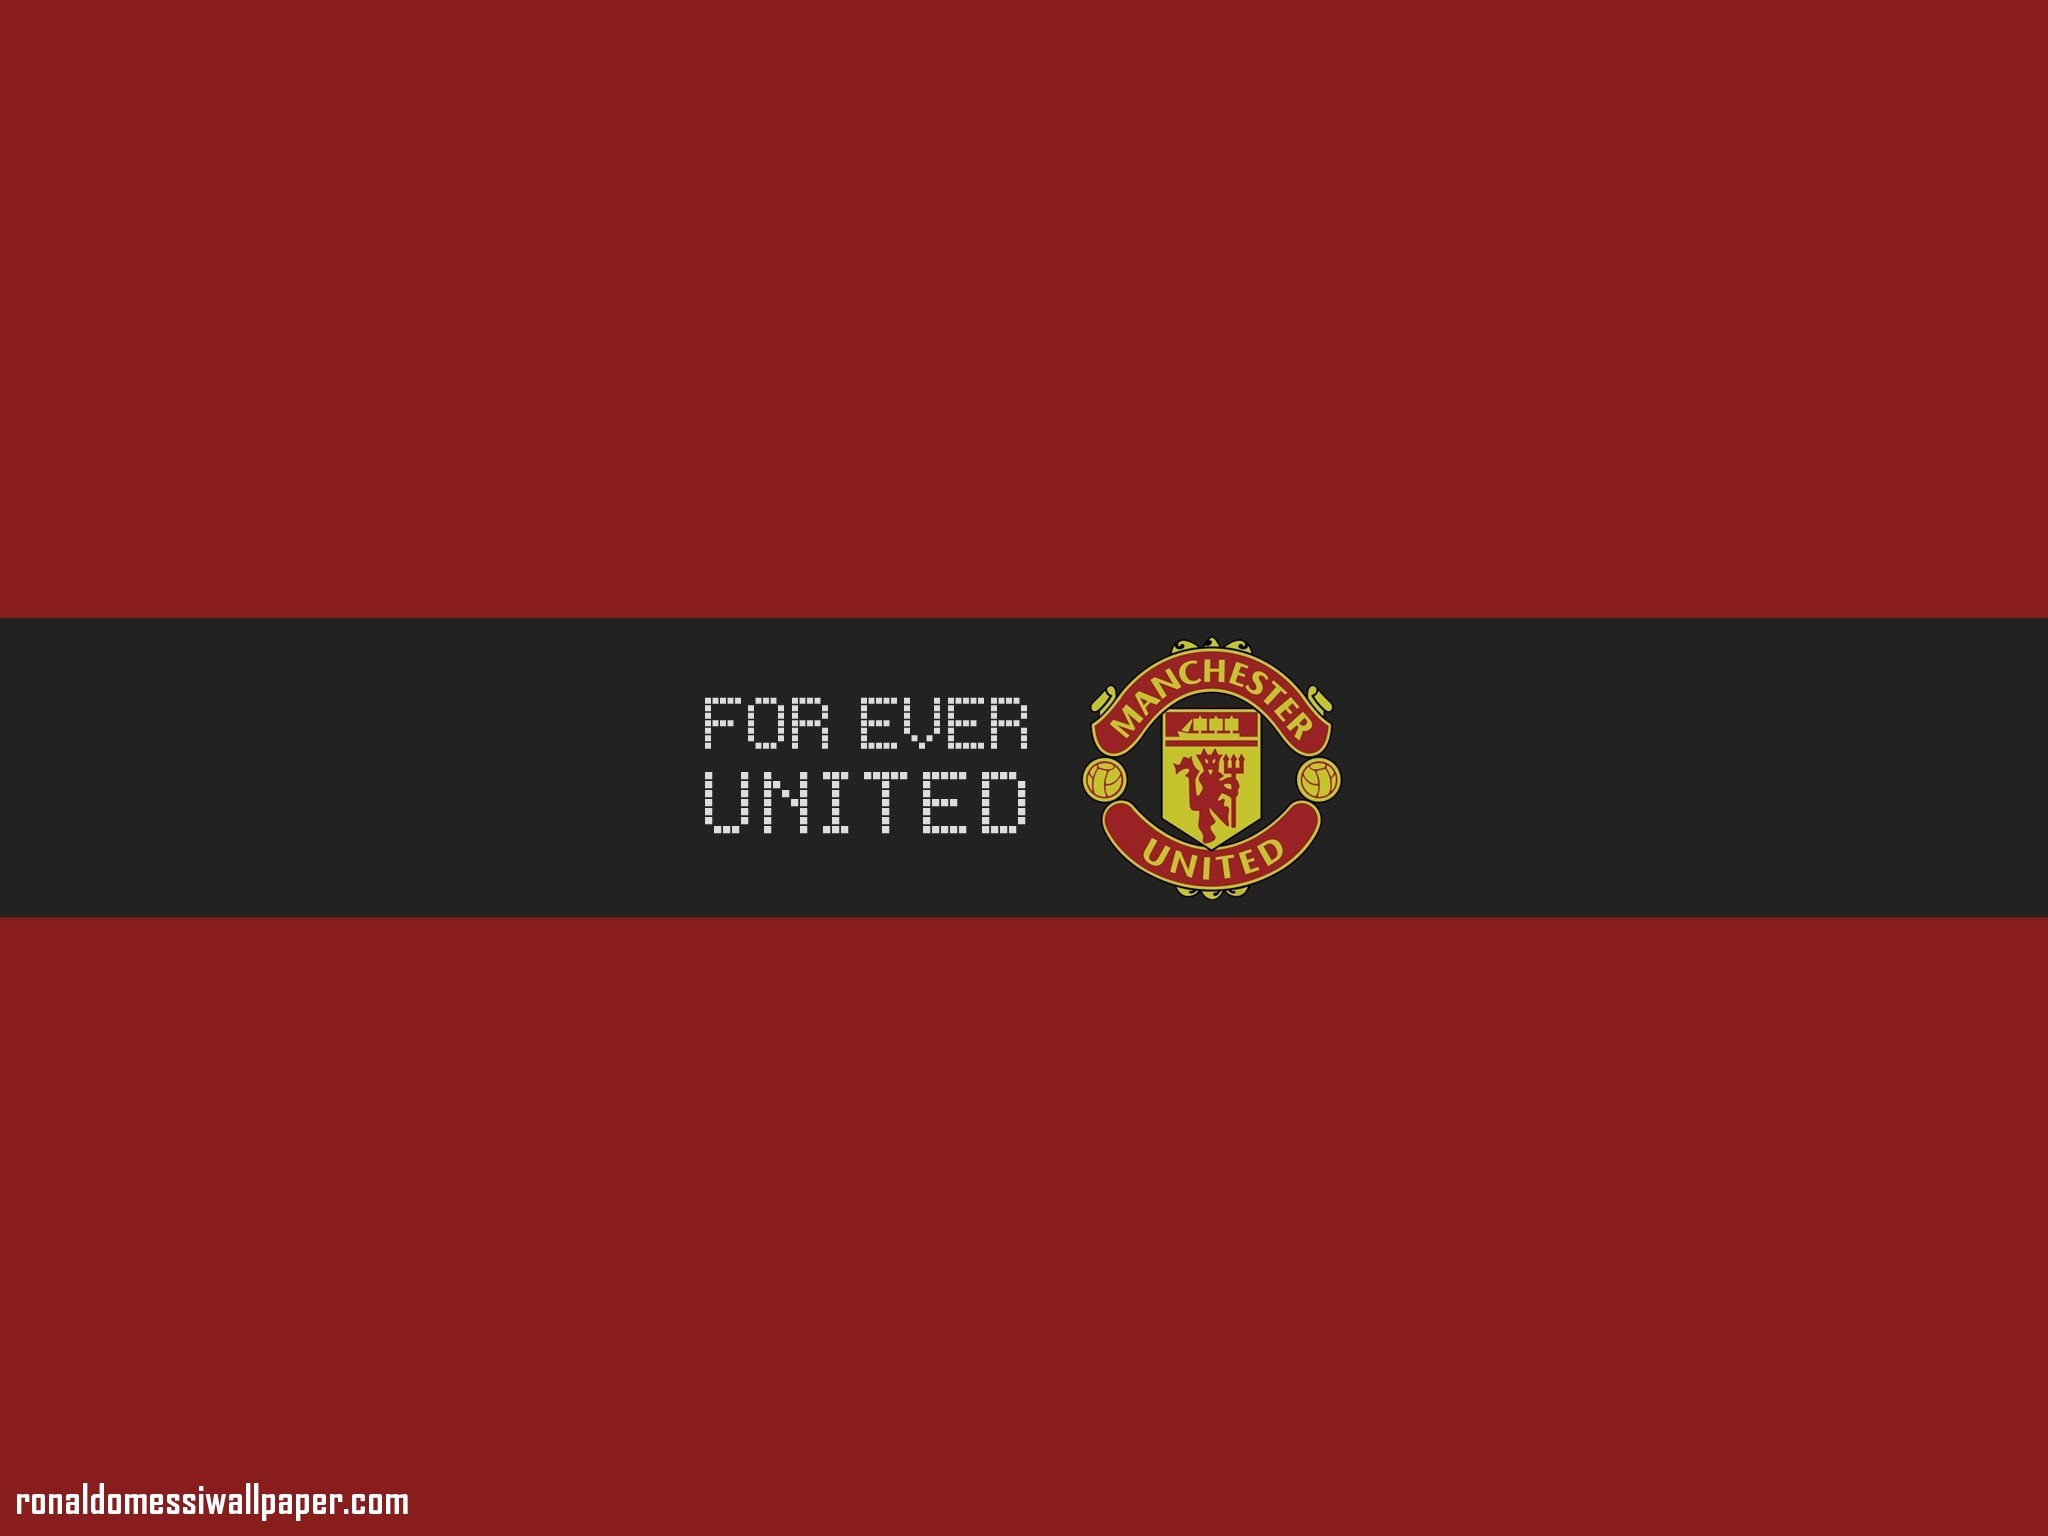 Manchester united wallpaper hd 2018 67 images - Manchester united latest wallpapers hd ...